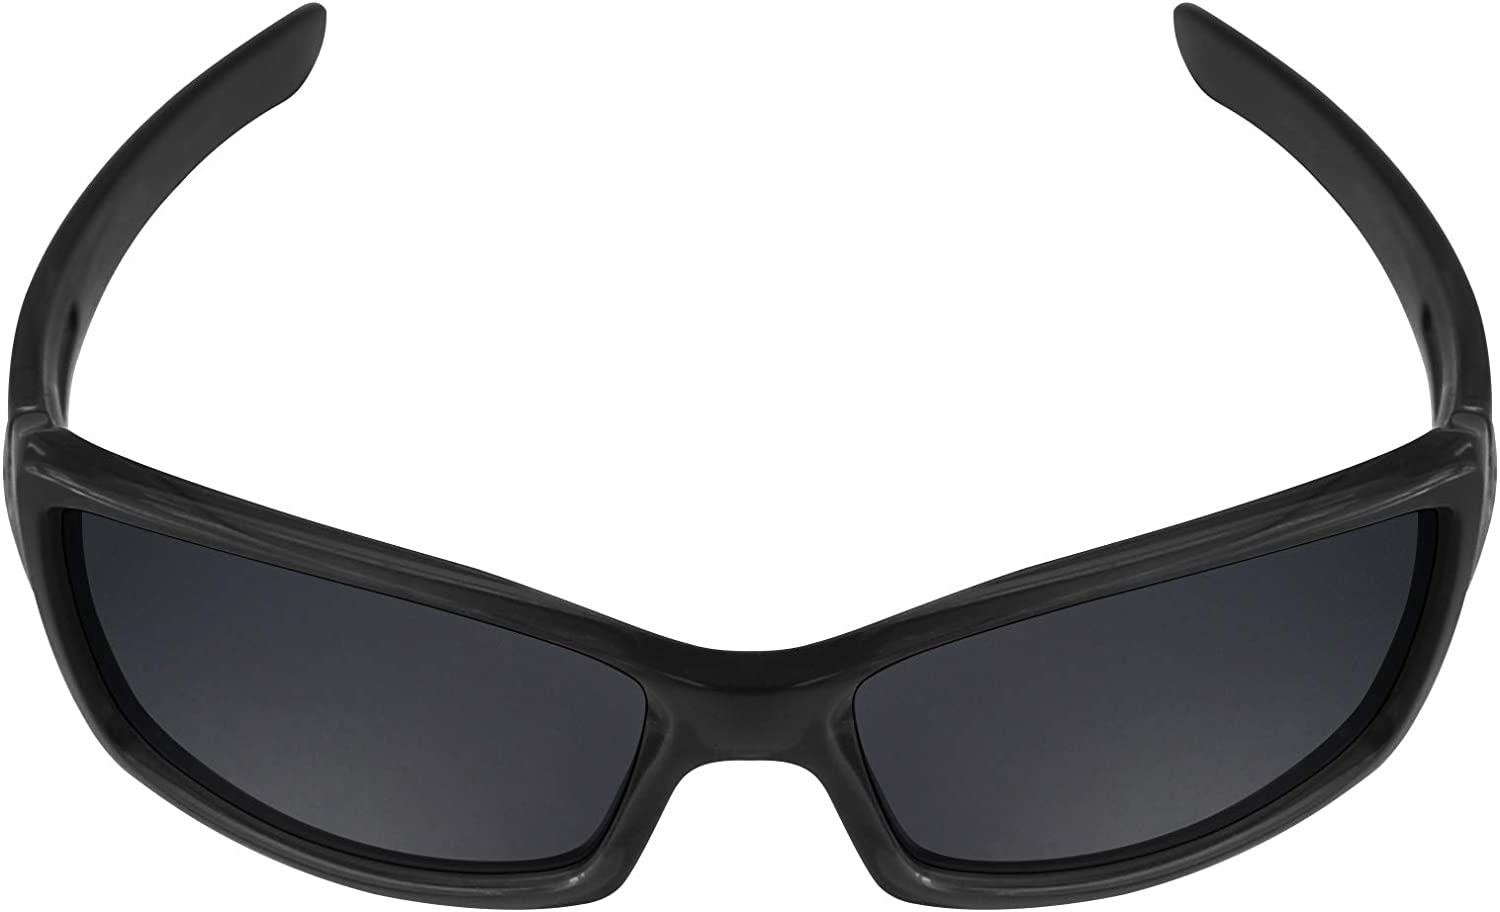 More Options ToughAsNails Polarized Lens Replacement for Revo Red Point RE4039 Sunglass